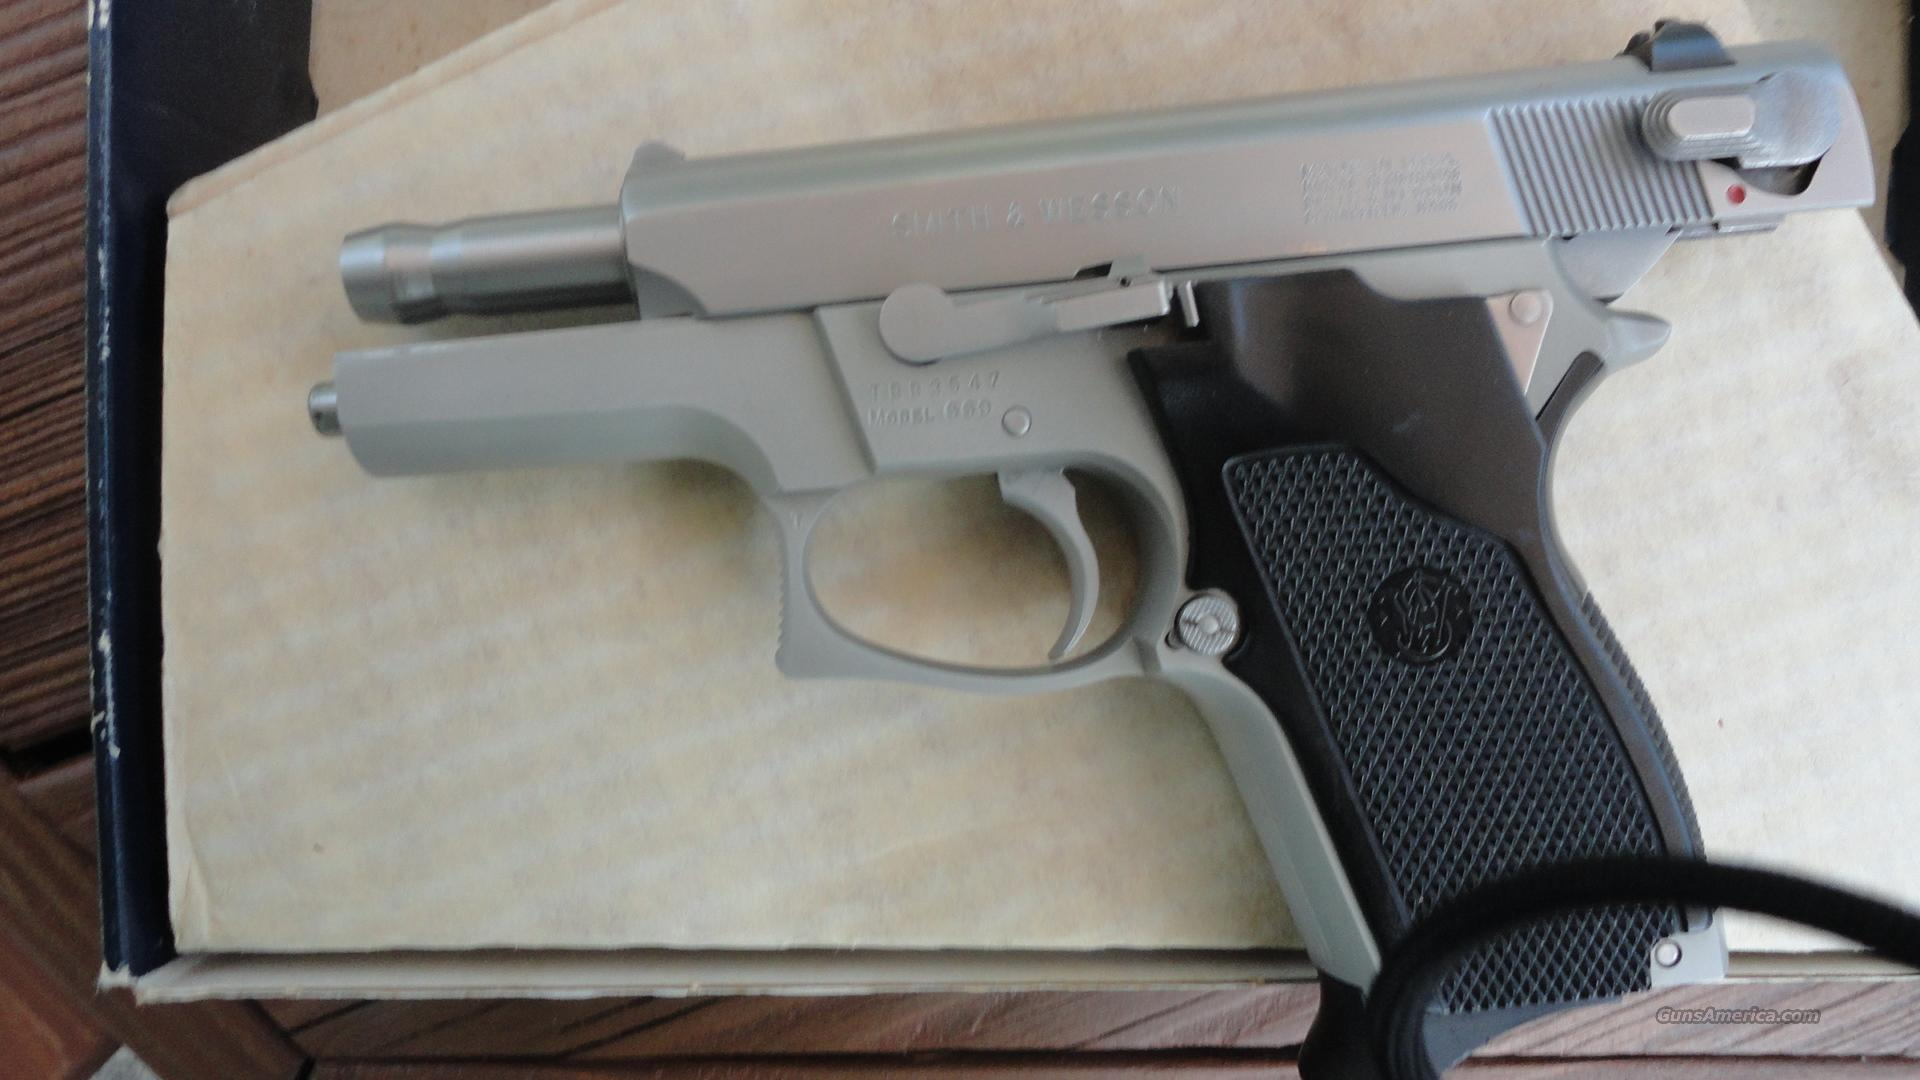 Smith Wesson Model 669  Guns > Pistols > Smith & Wesson Pistols - Autos > Steel Frame